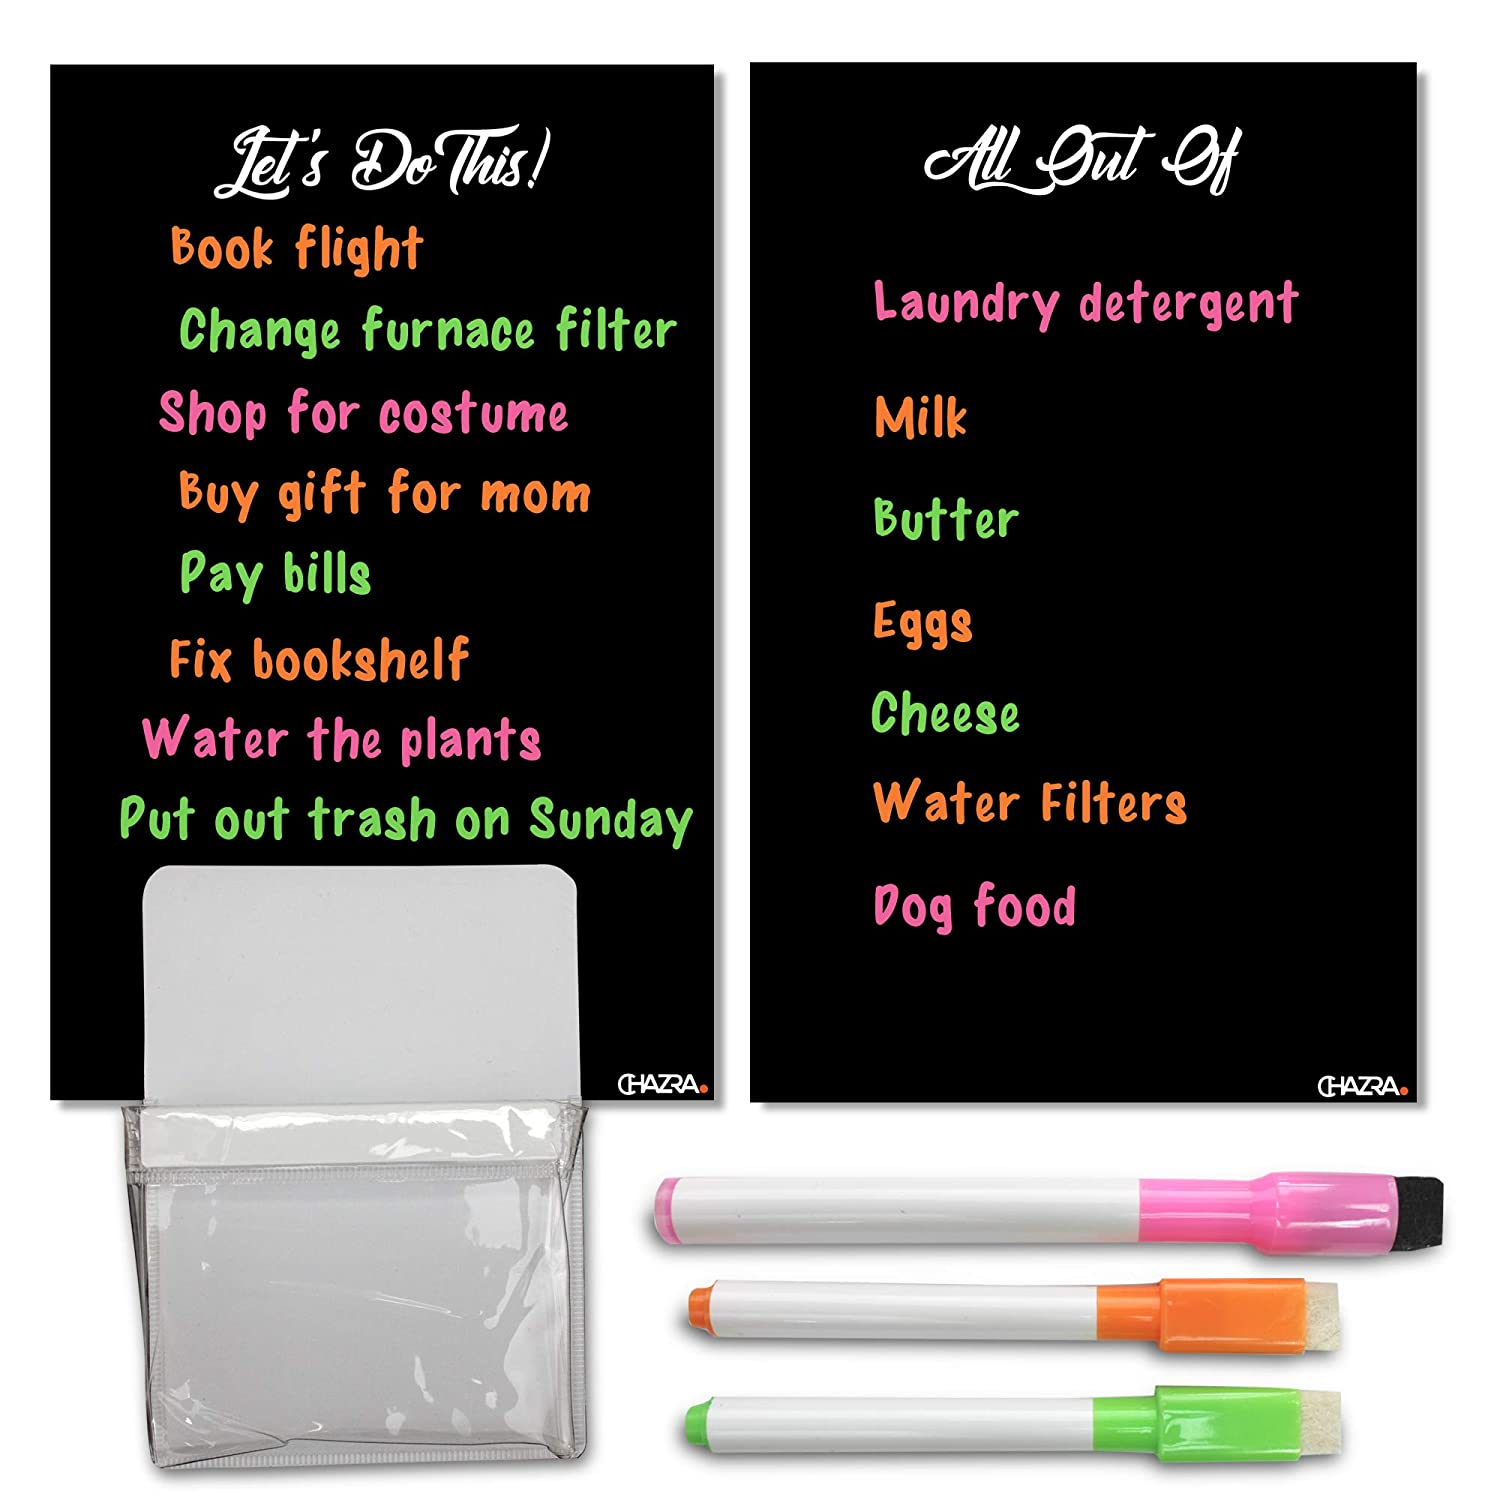 "Magnetic Dry Erase Boards for Refrigerator (2 Pieces, 6.25"" x 9.75""), Dry Erase Markers and Magnetic Pen Holder Set - Dry Erase Fridge to Do List and Grocery List Magnet with Fridge Pencil Cup Holder"